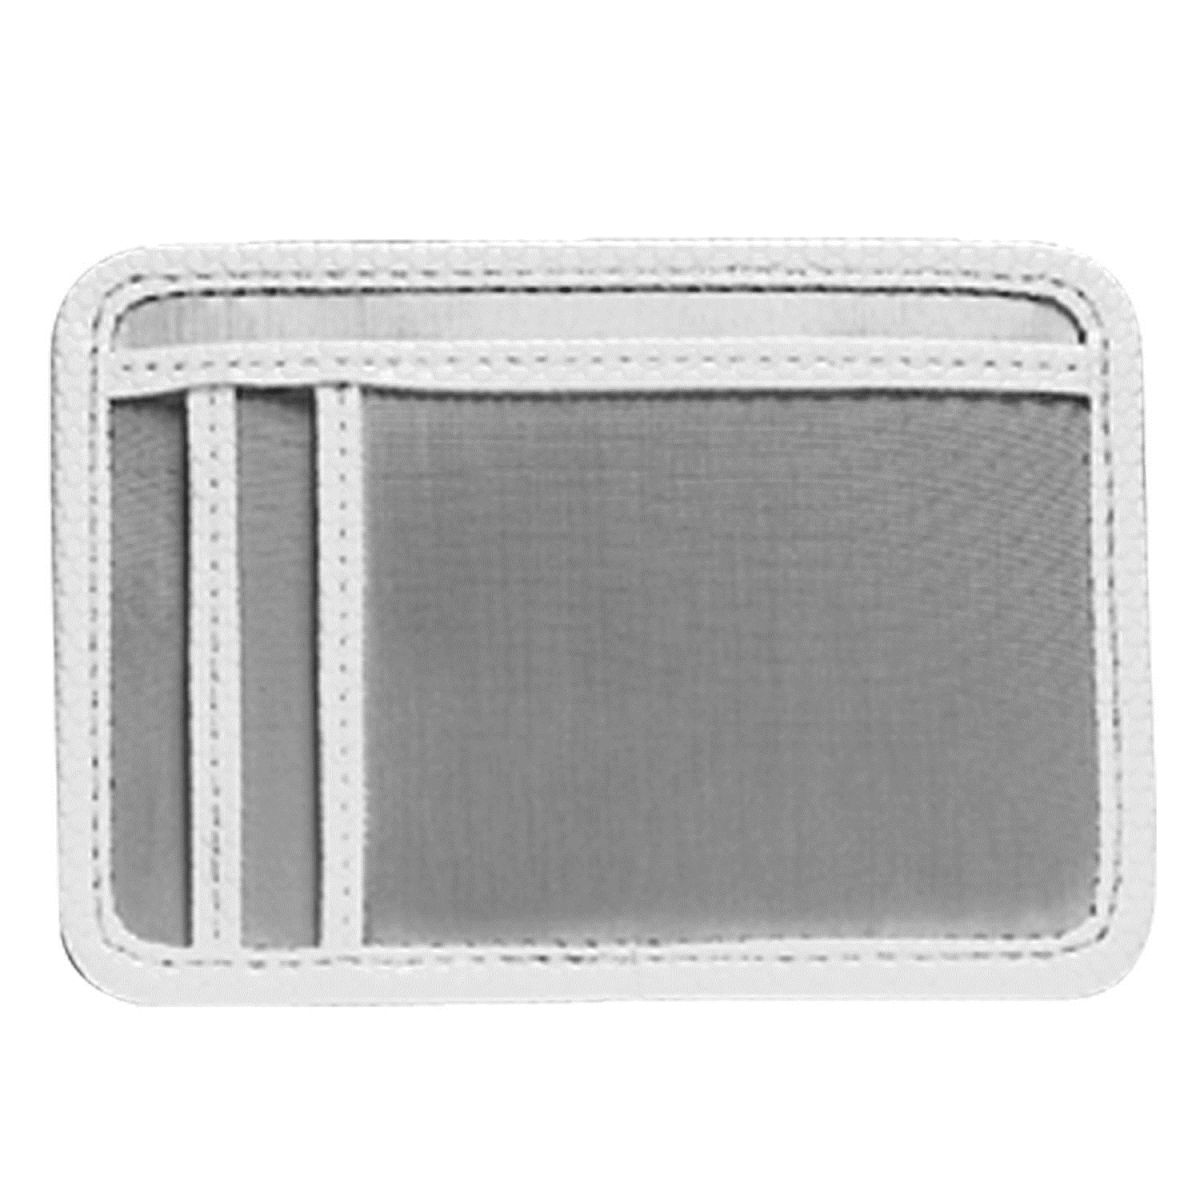 Stainless Steel Minimal Wallet - Silver/White